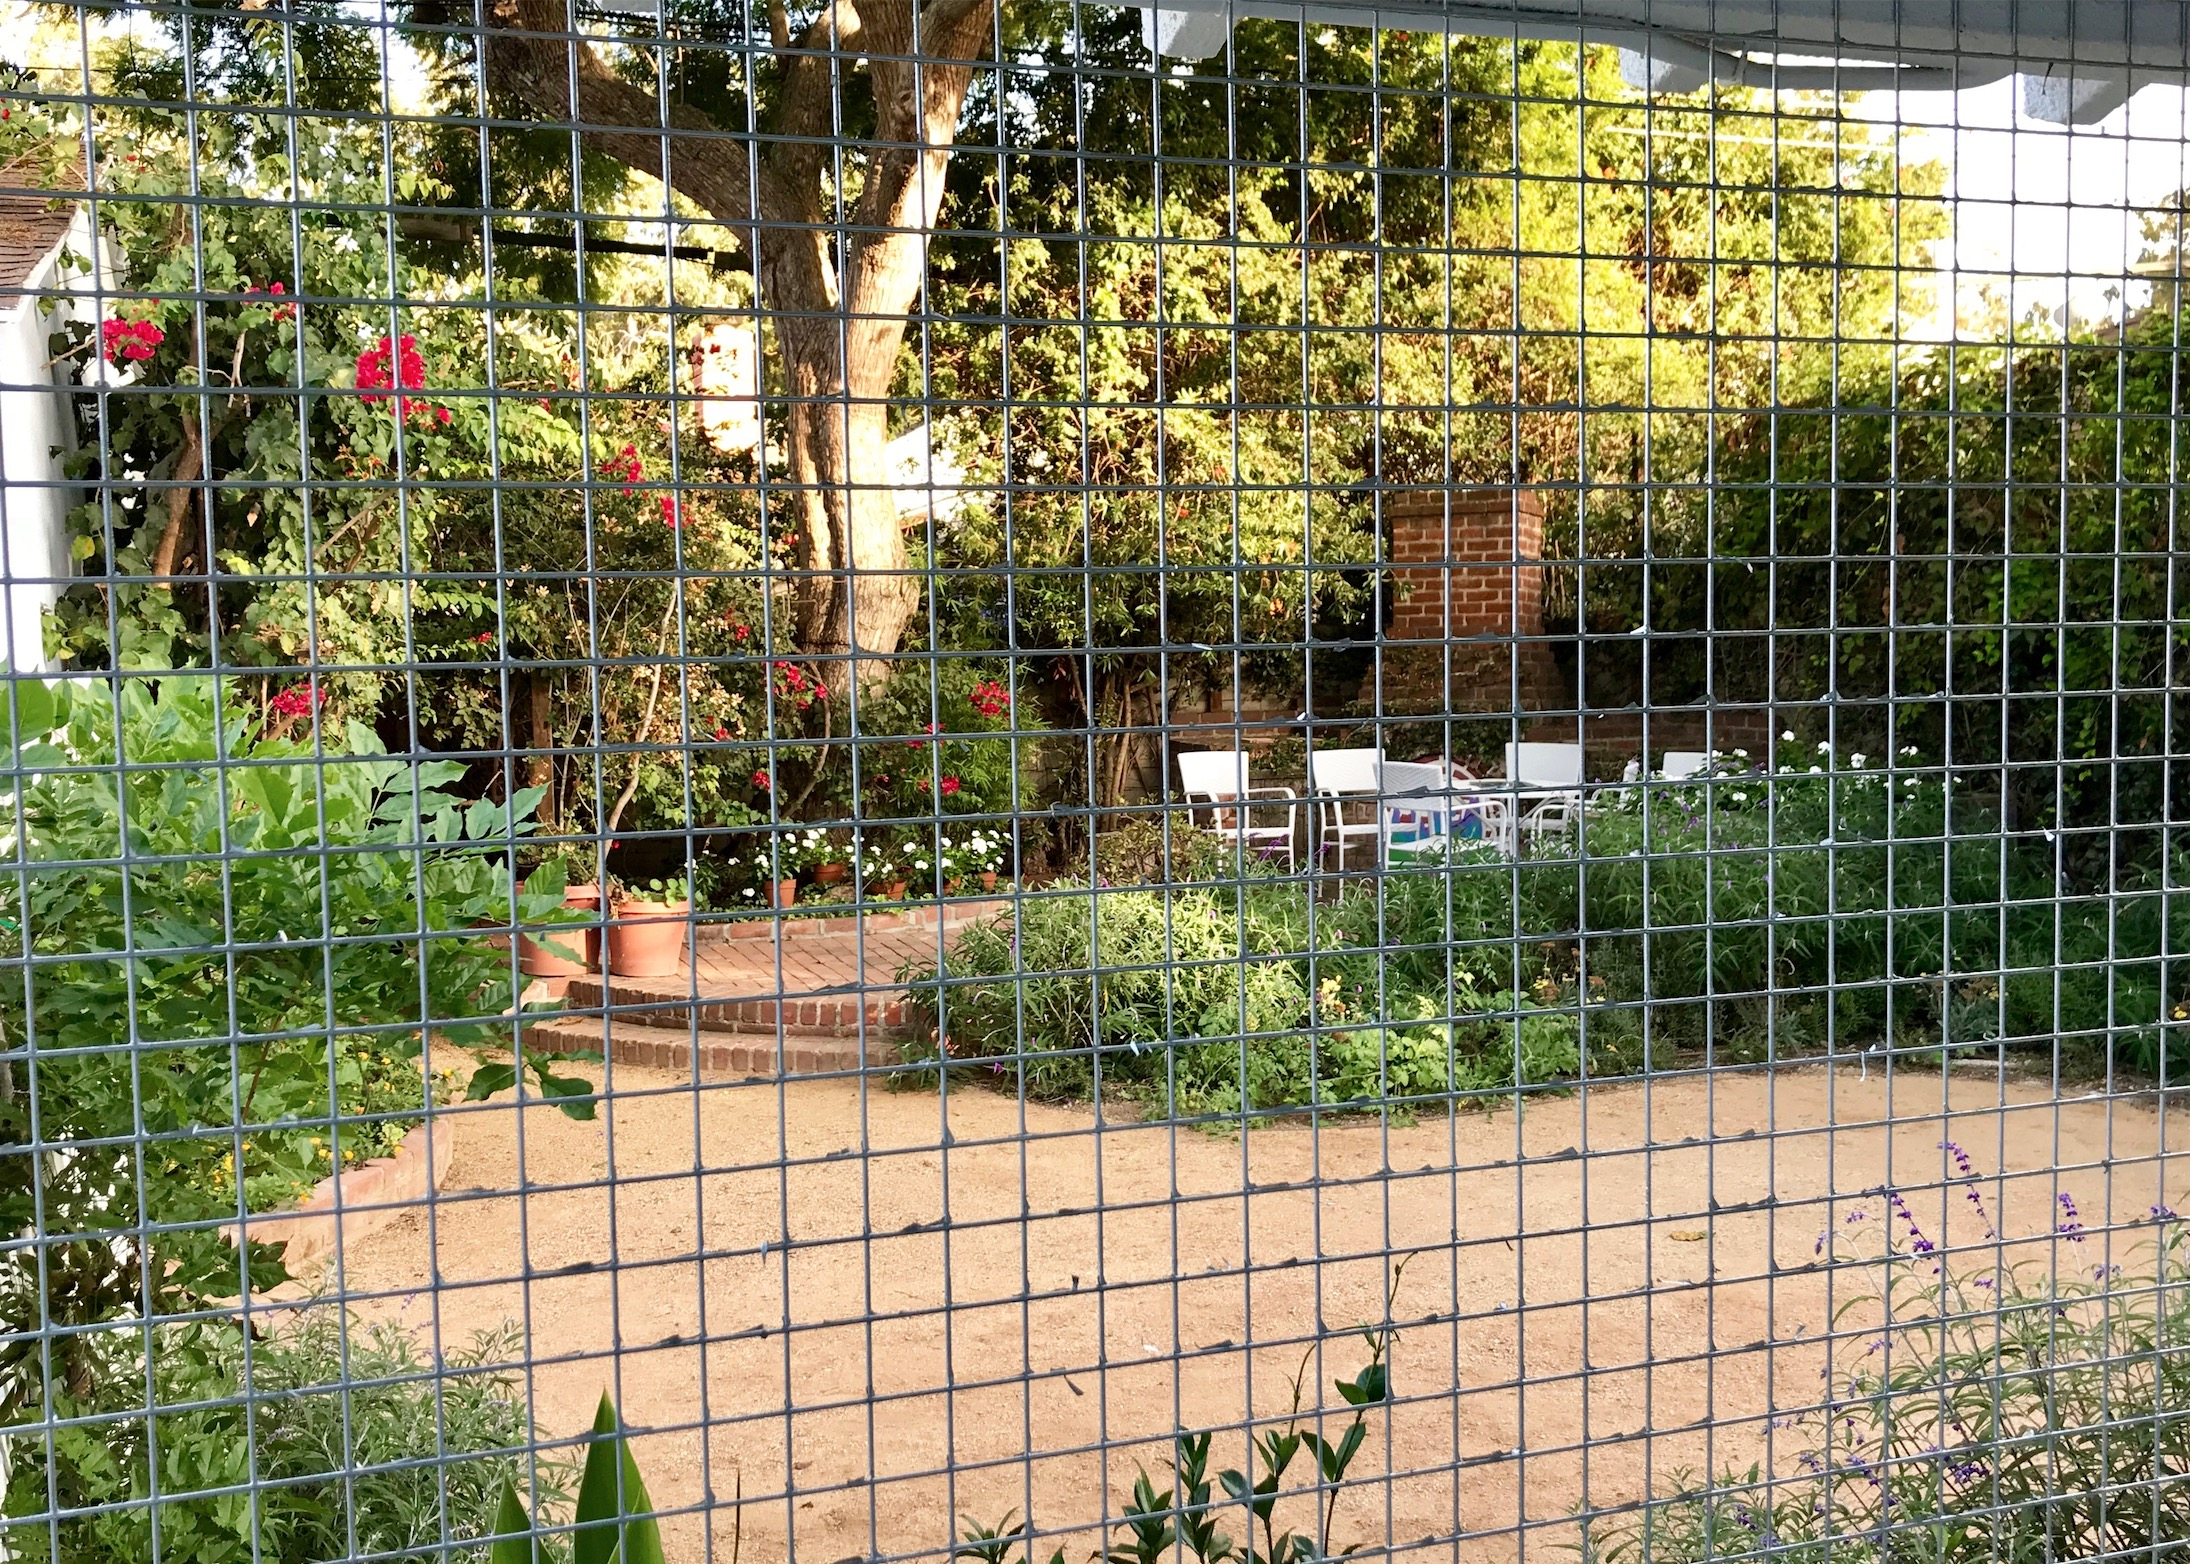 Culver City Catio Enclosure View